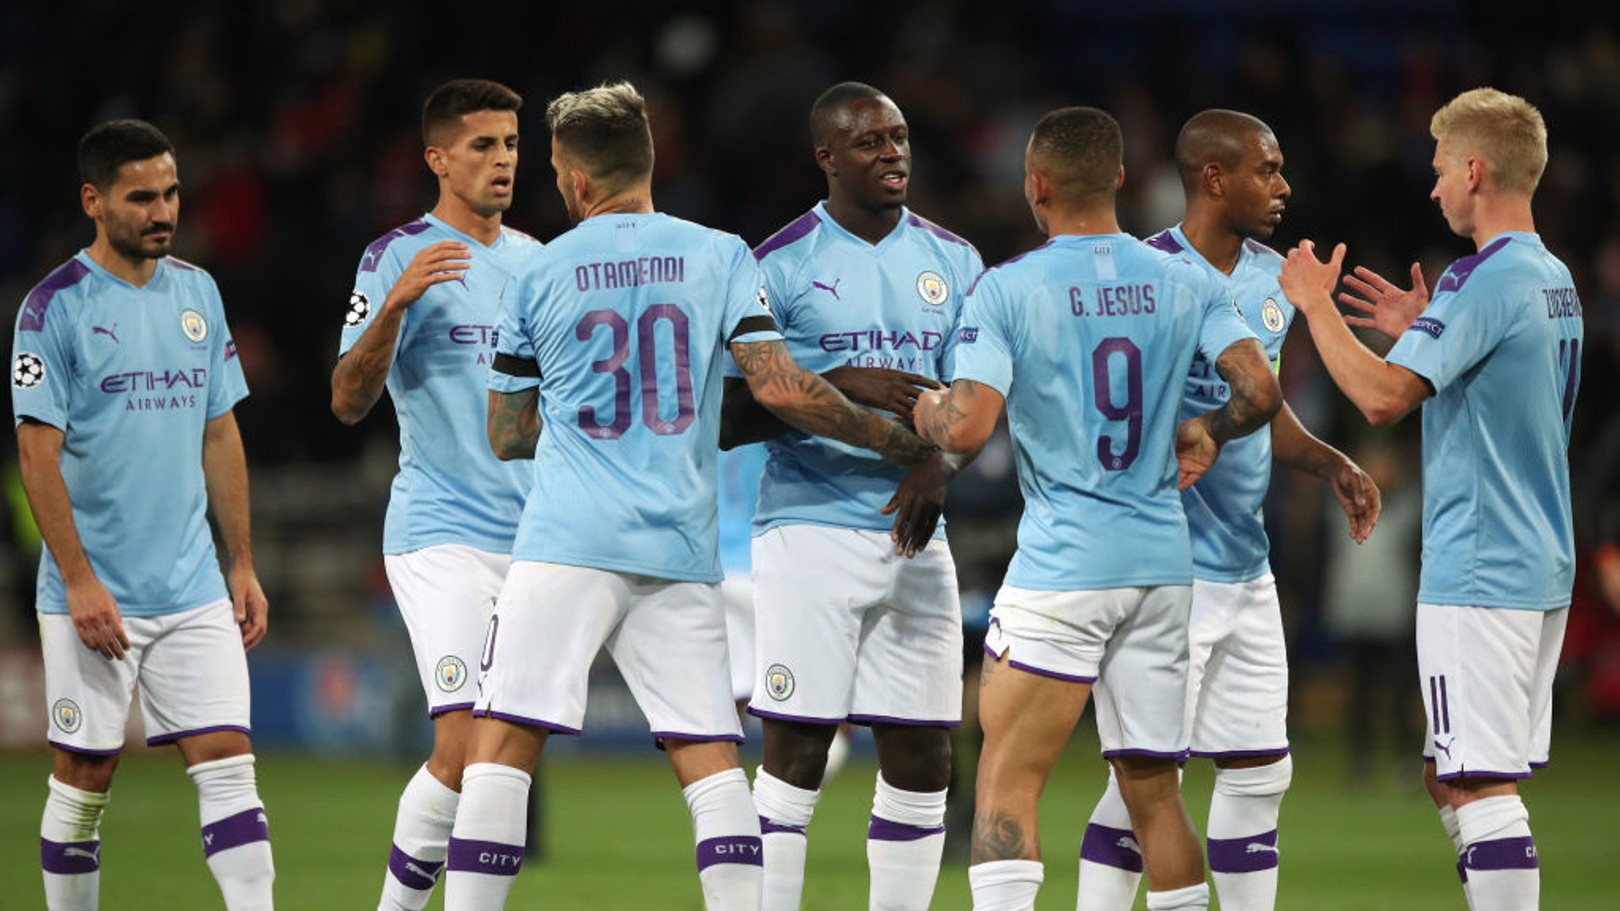 SQUAD GOALS: City begin the defence of our Carabao Cup at Preston North End.